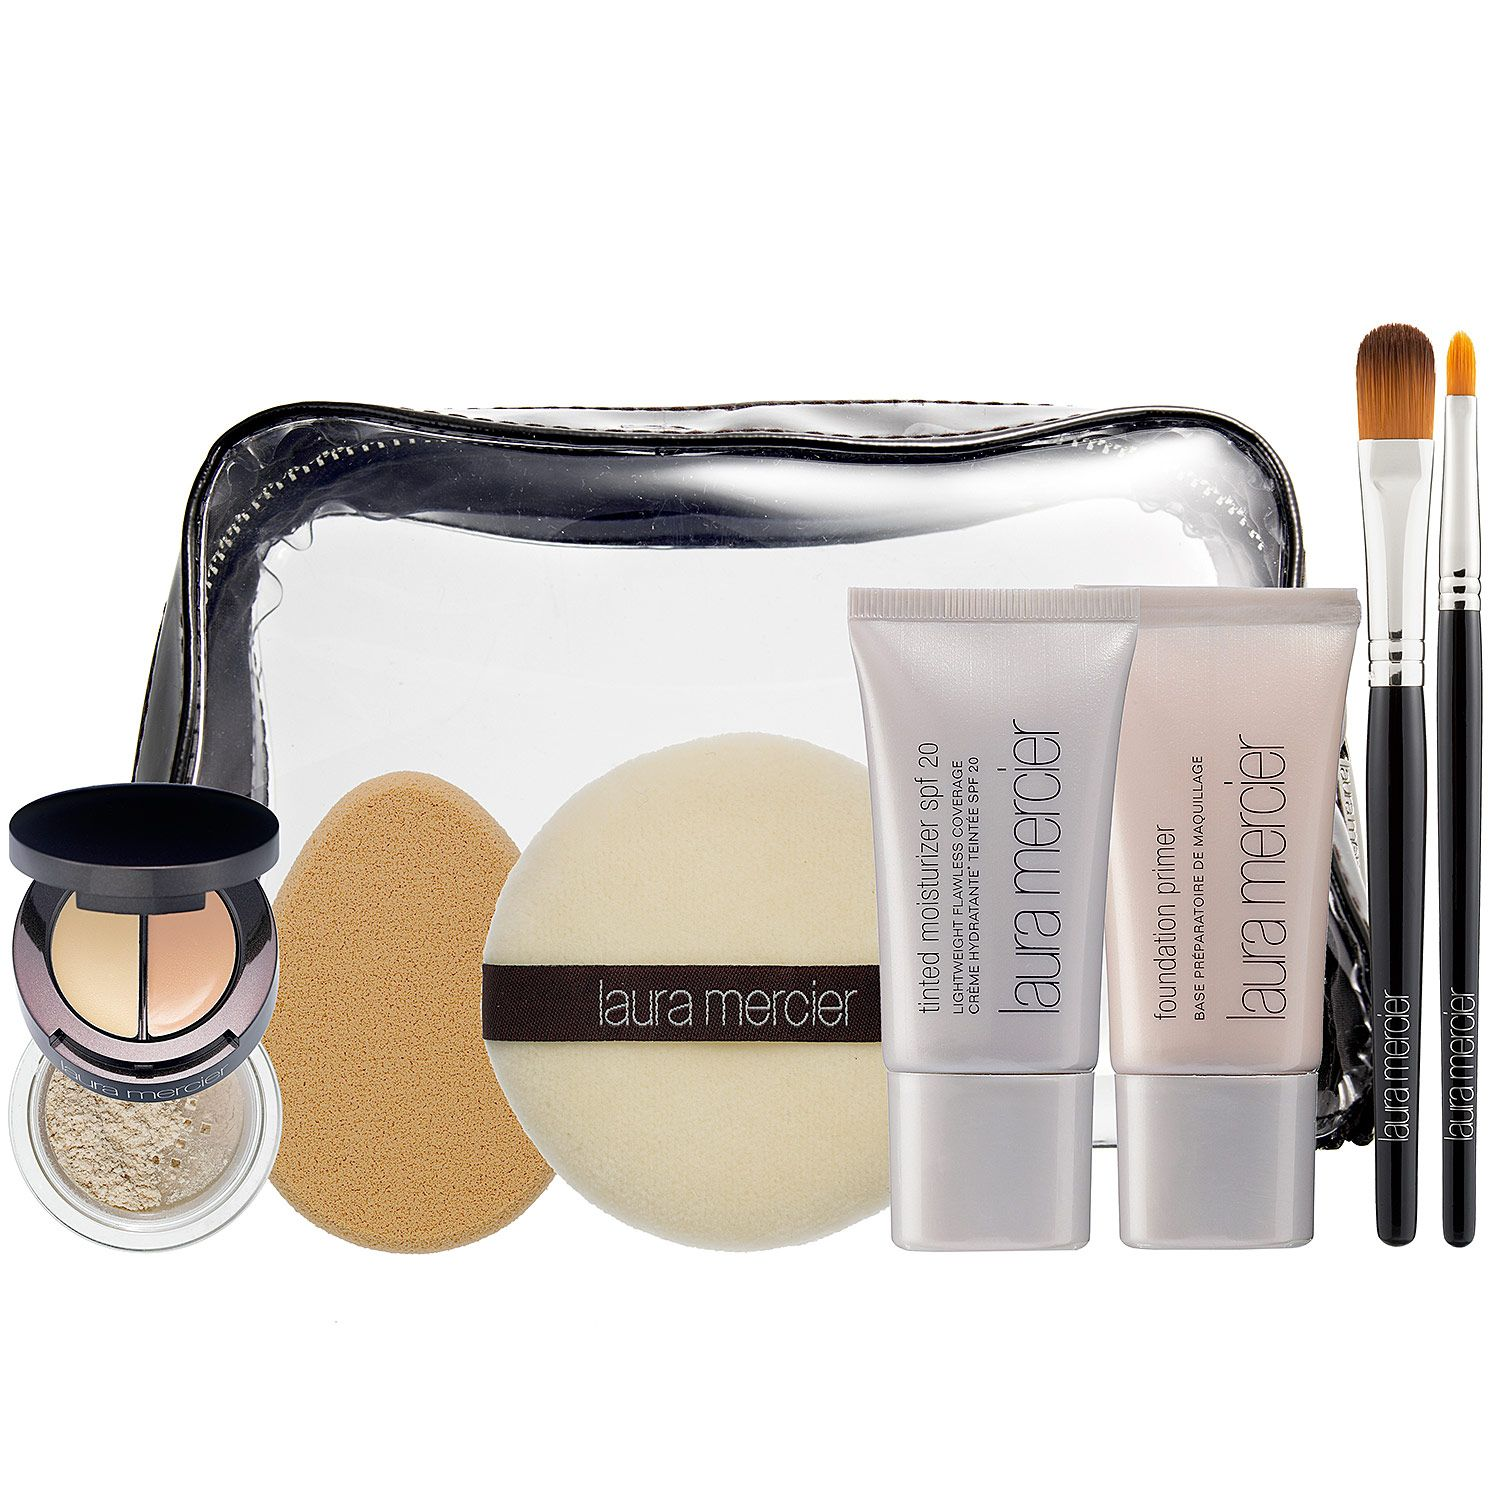 Flawless Face Kit Laura Mercier Sephora (With images